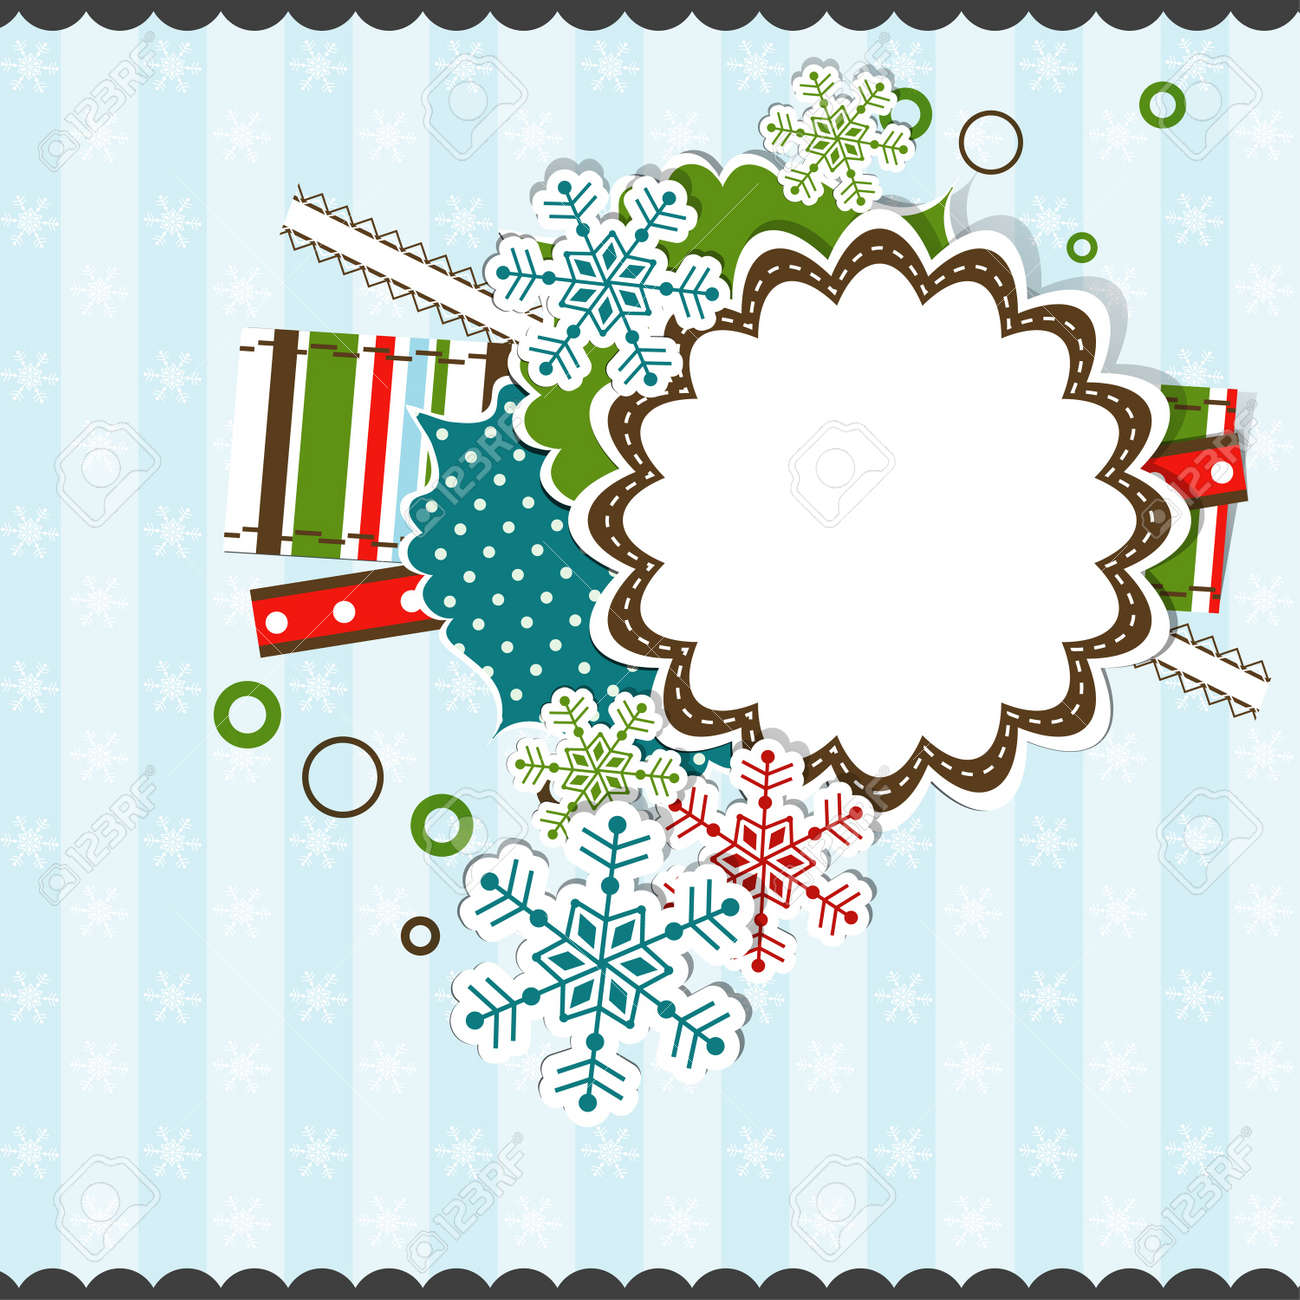 Template Christmas greeting card, vector illustration Stock Vector - 16683838